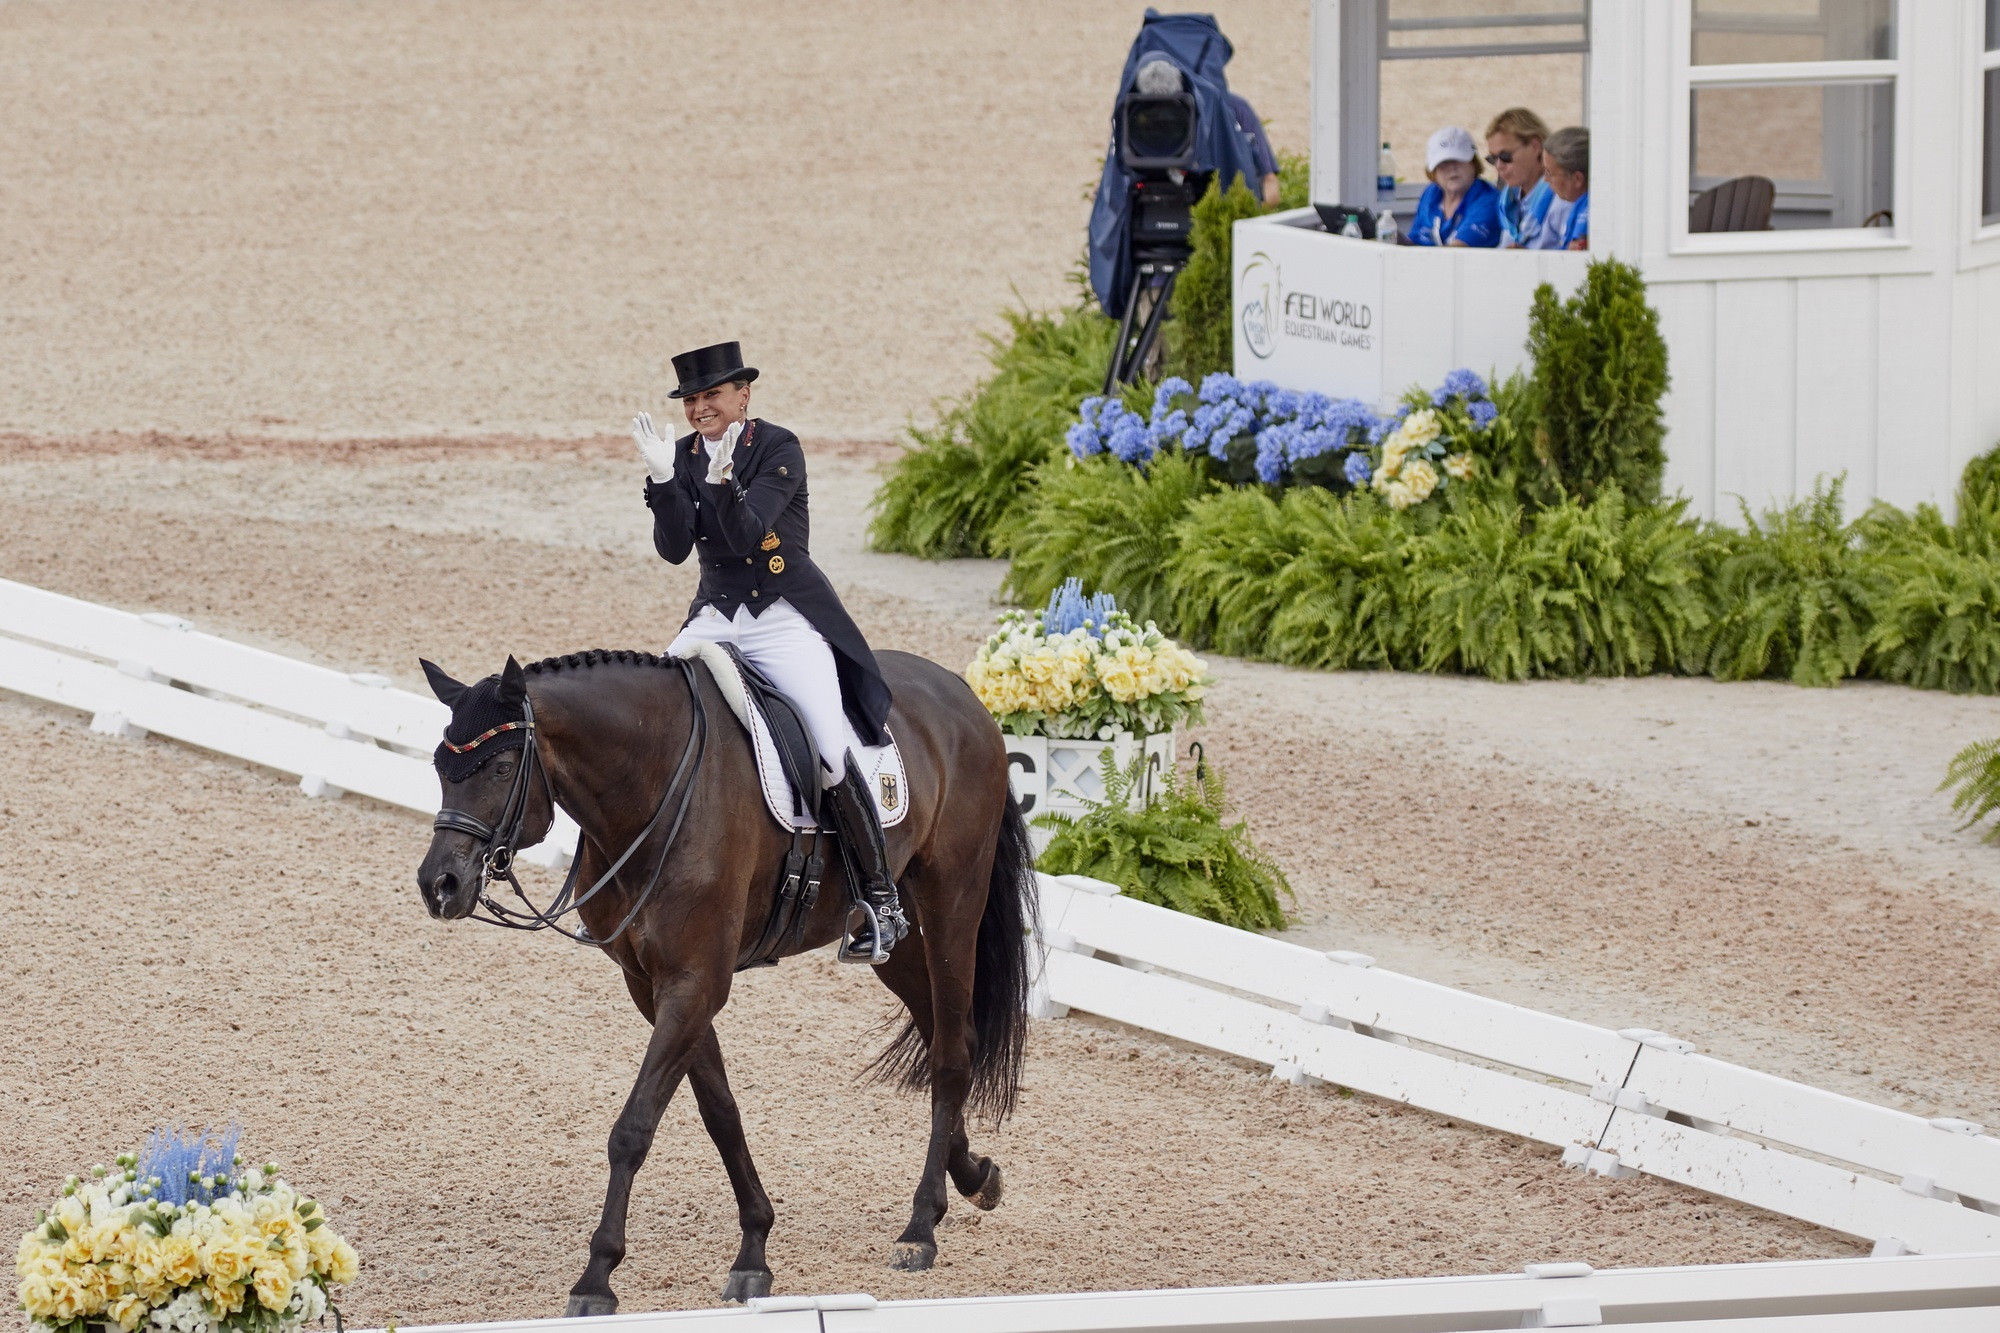 Germany enjoyed a strong start to the team dressage competition ©FEI